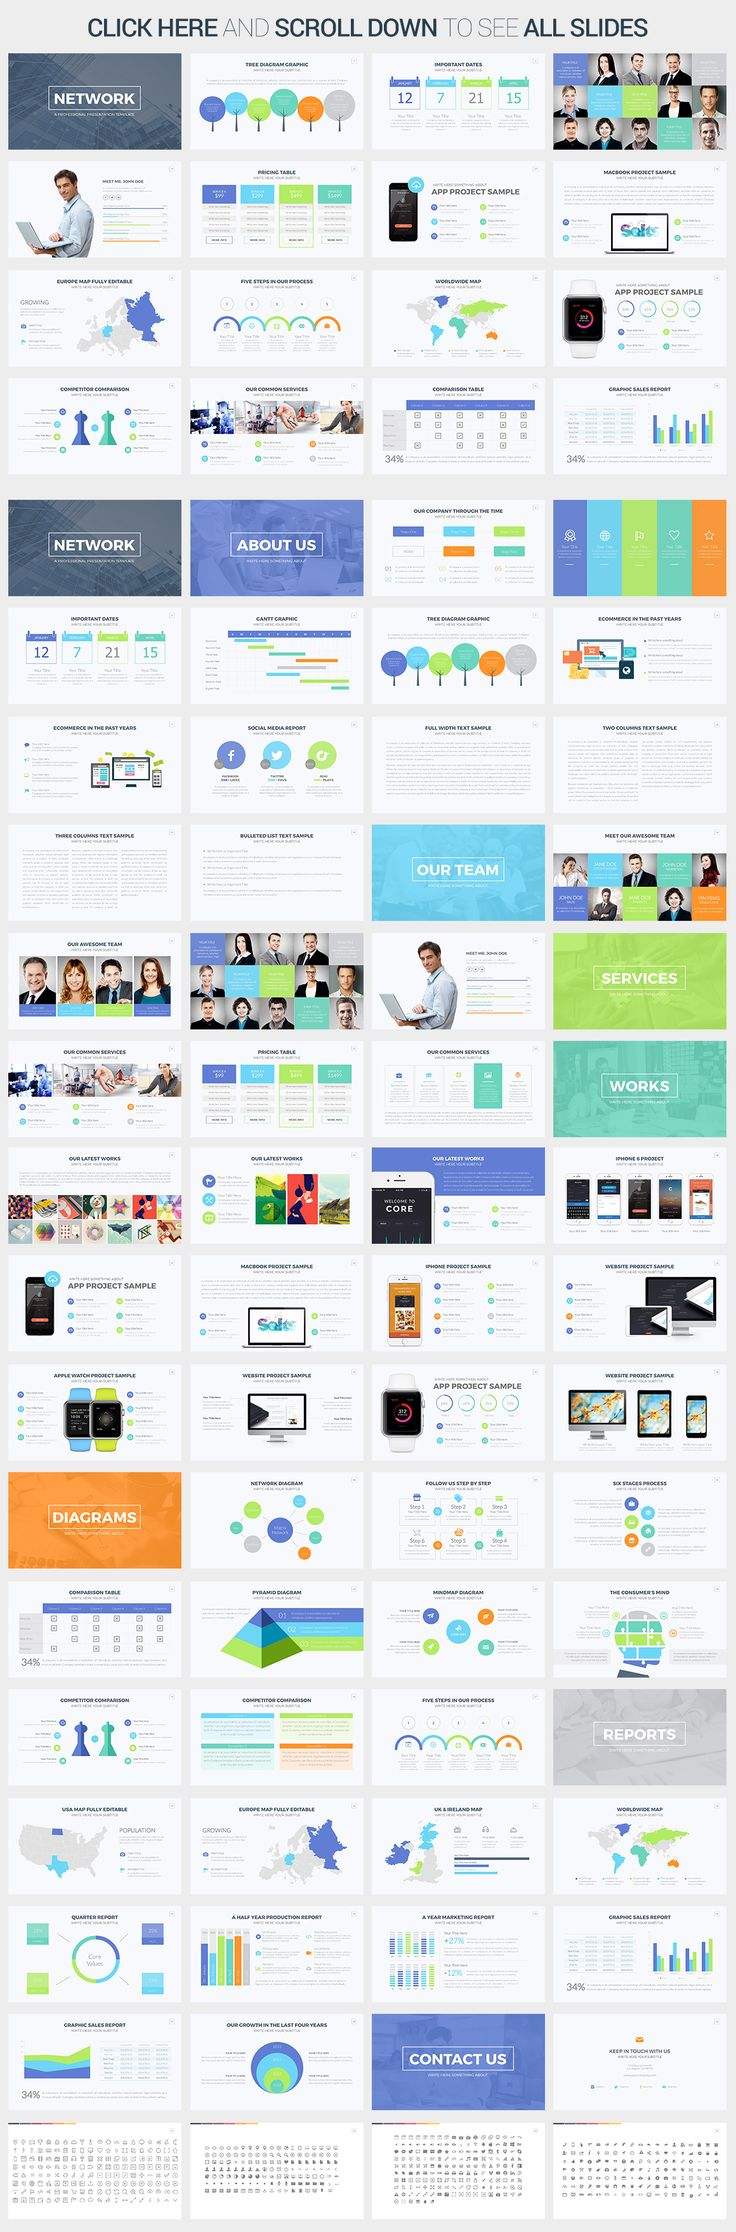 42 best images about best powerpoint templates on pinterest mobile app creative and social. Black Bedroom Furniture Sets. Home Design Ideas